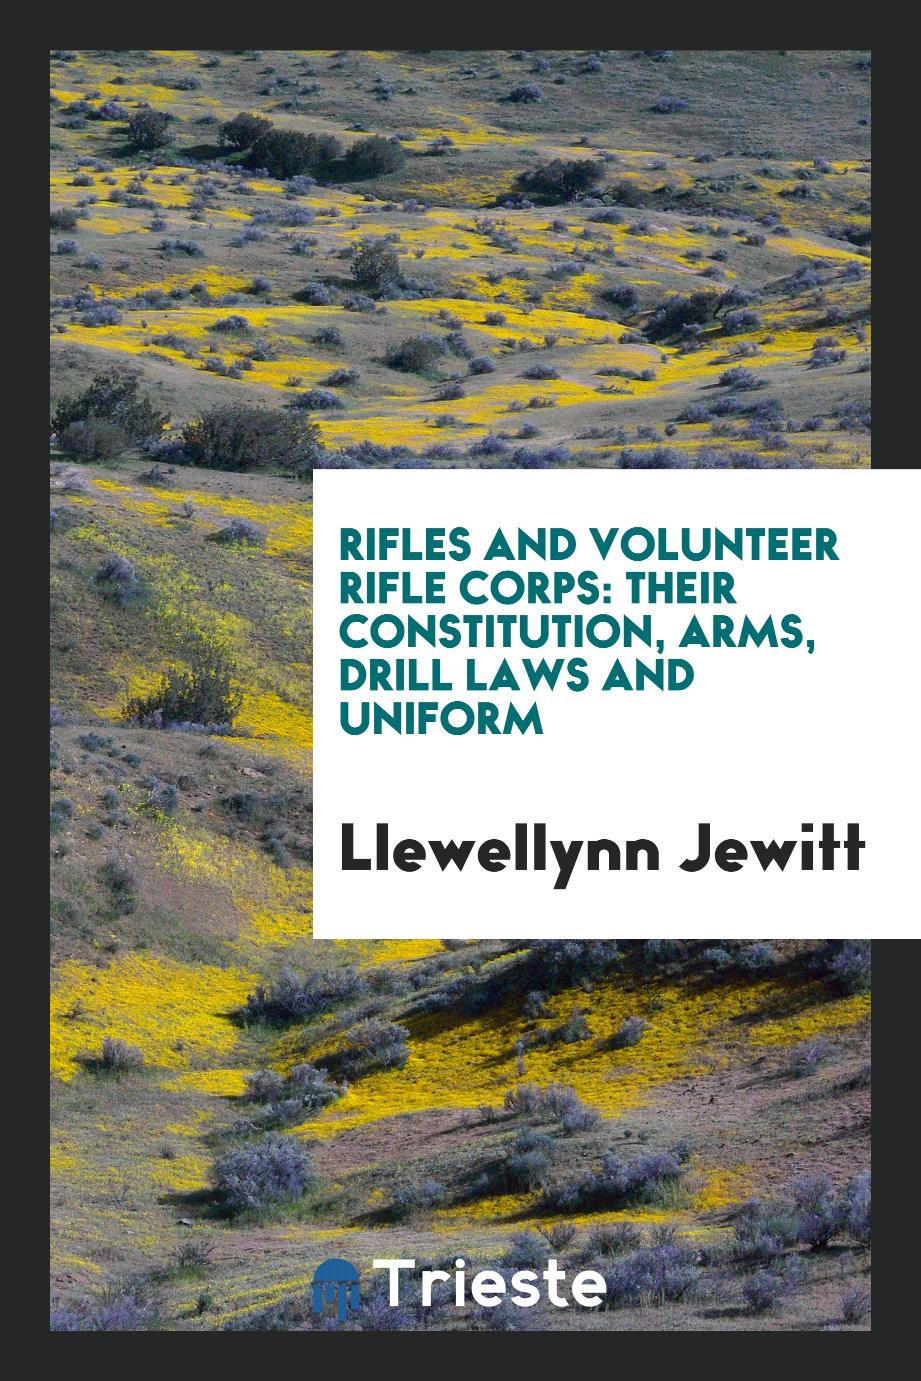 Rifles and Volunteer Rifle Corps: Their Constitution, Arms, Drill Laws and Uniform